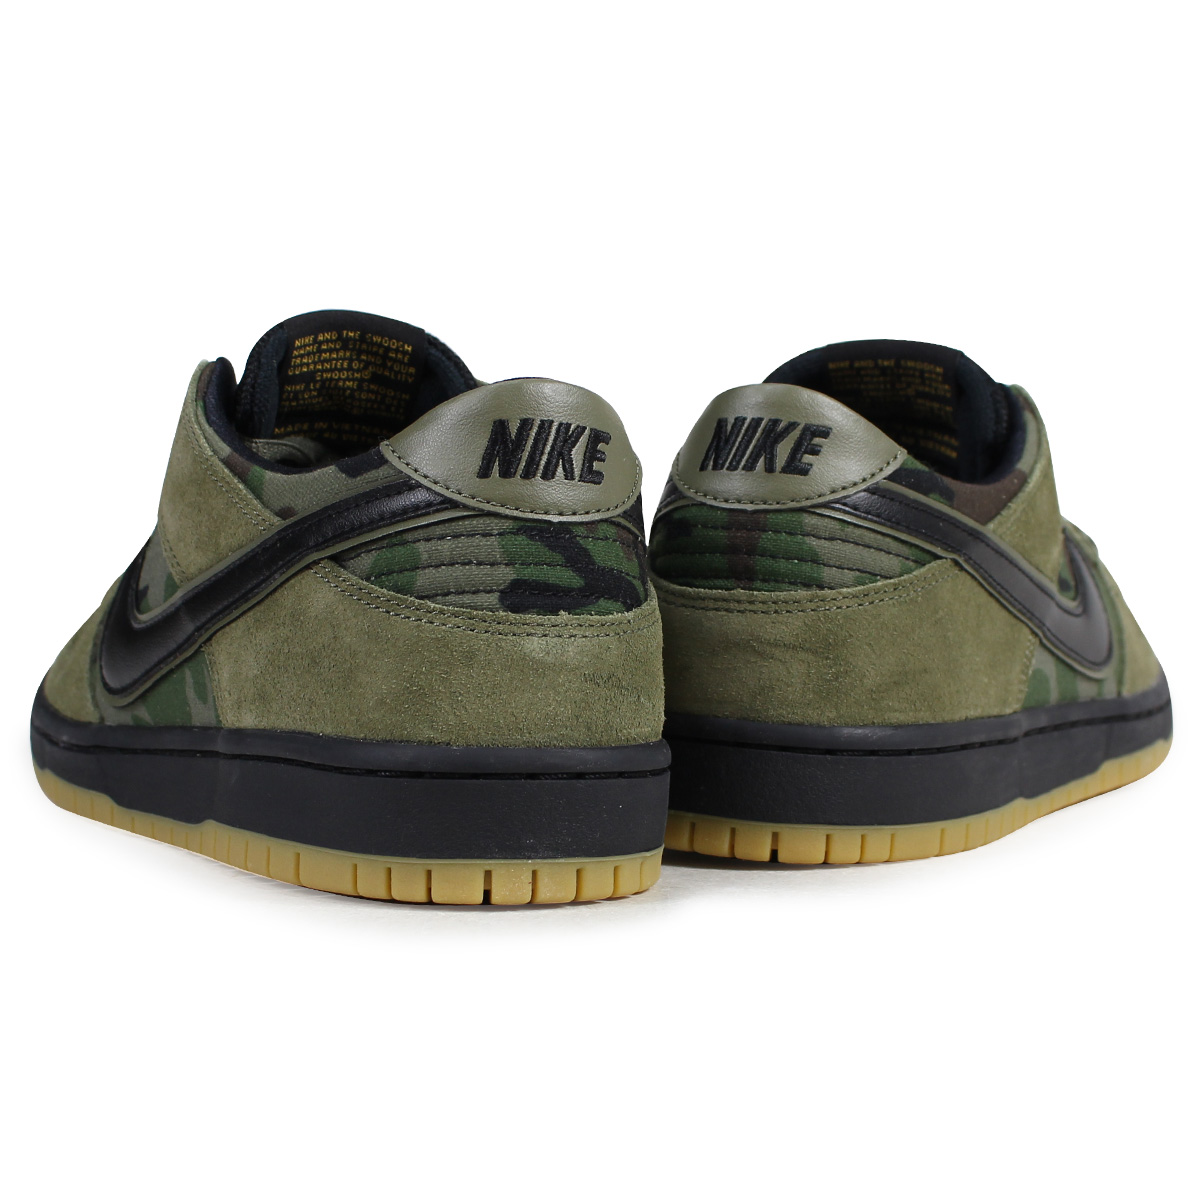 wholesale dealer 9bc9f 9f16b NIKE SB ZOOM DUNK LOW PRO Nike dunk low sneakers men 854,866-209 olive duck